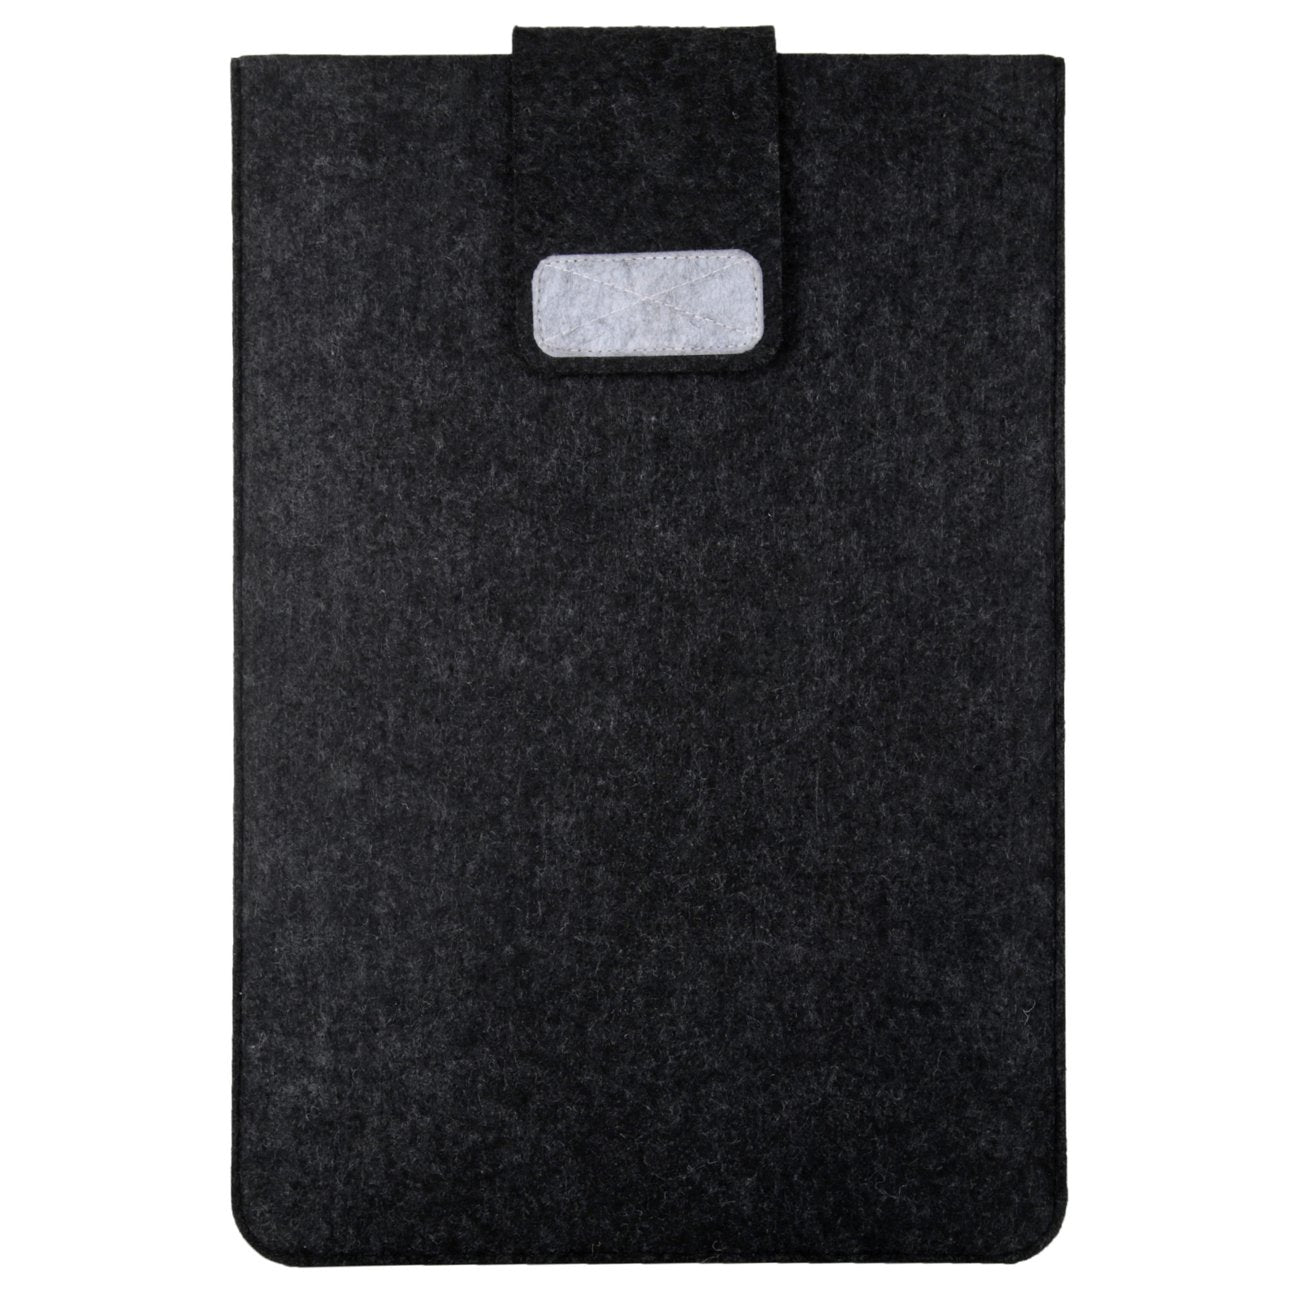 Felt basic black Laptop Sleeve